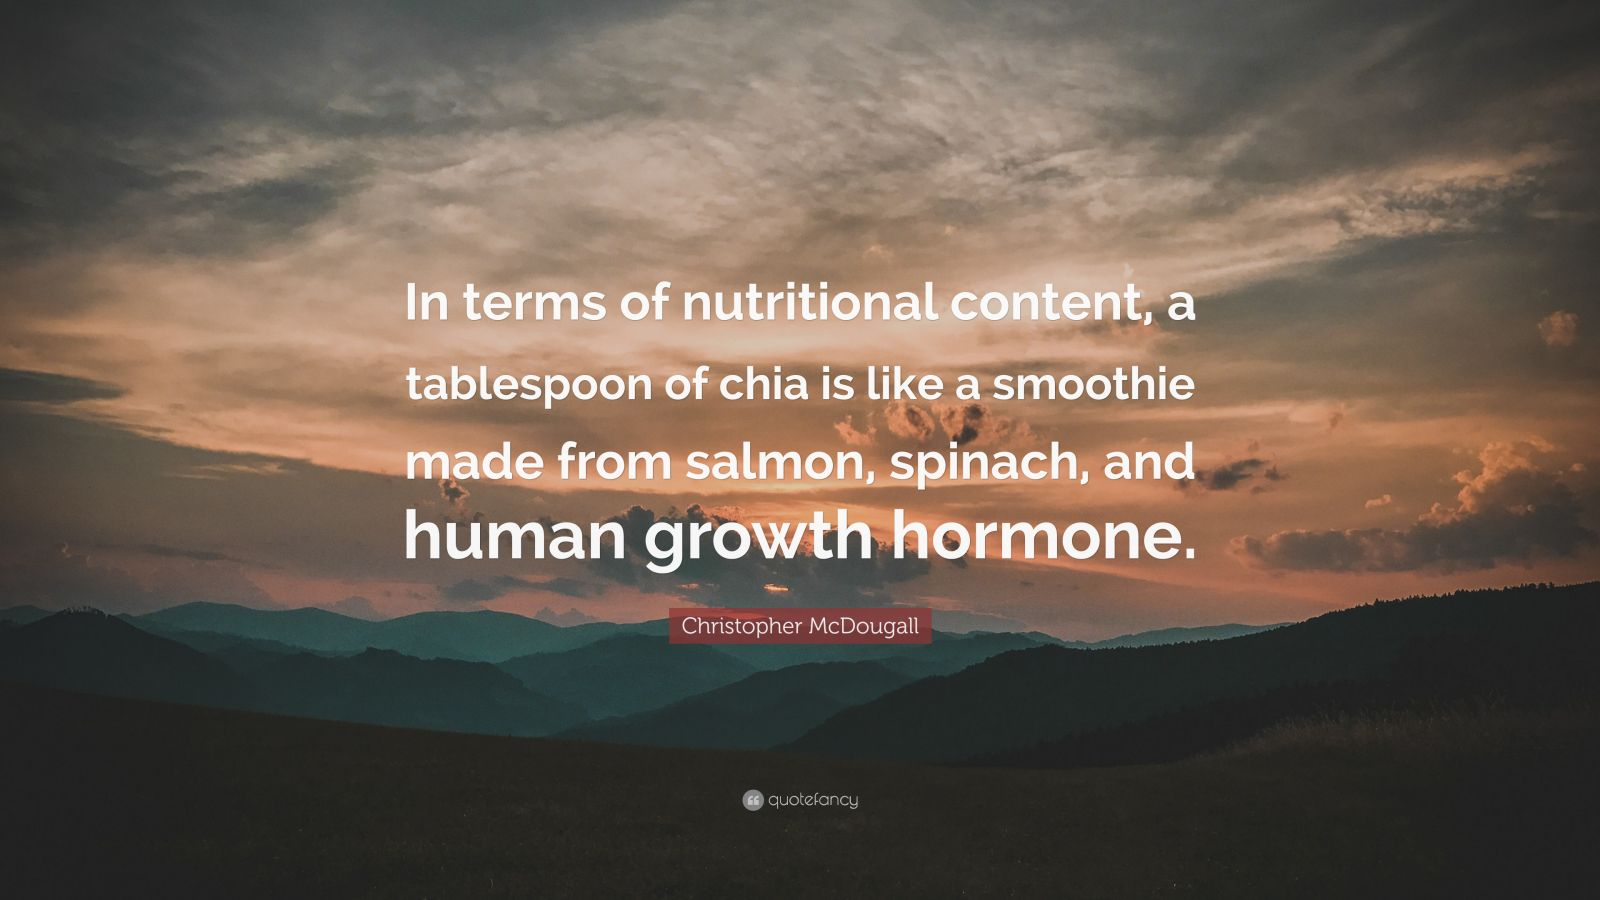 """Christopher McDougall Quote: """"In terms of nutritional content, a tablespoon of chia is like a smoothie made from salmon, spinach, and human growth hormone."""""""